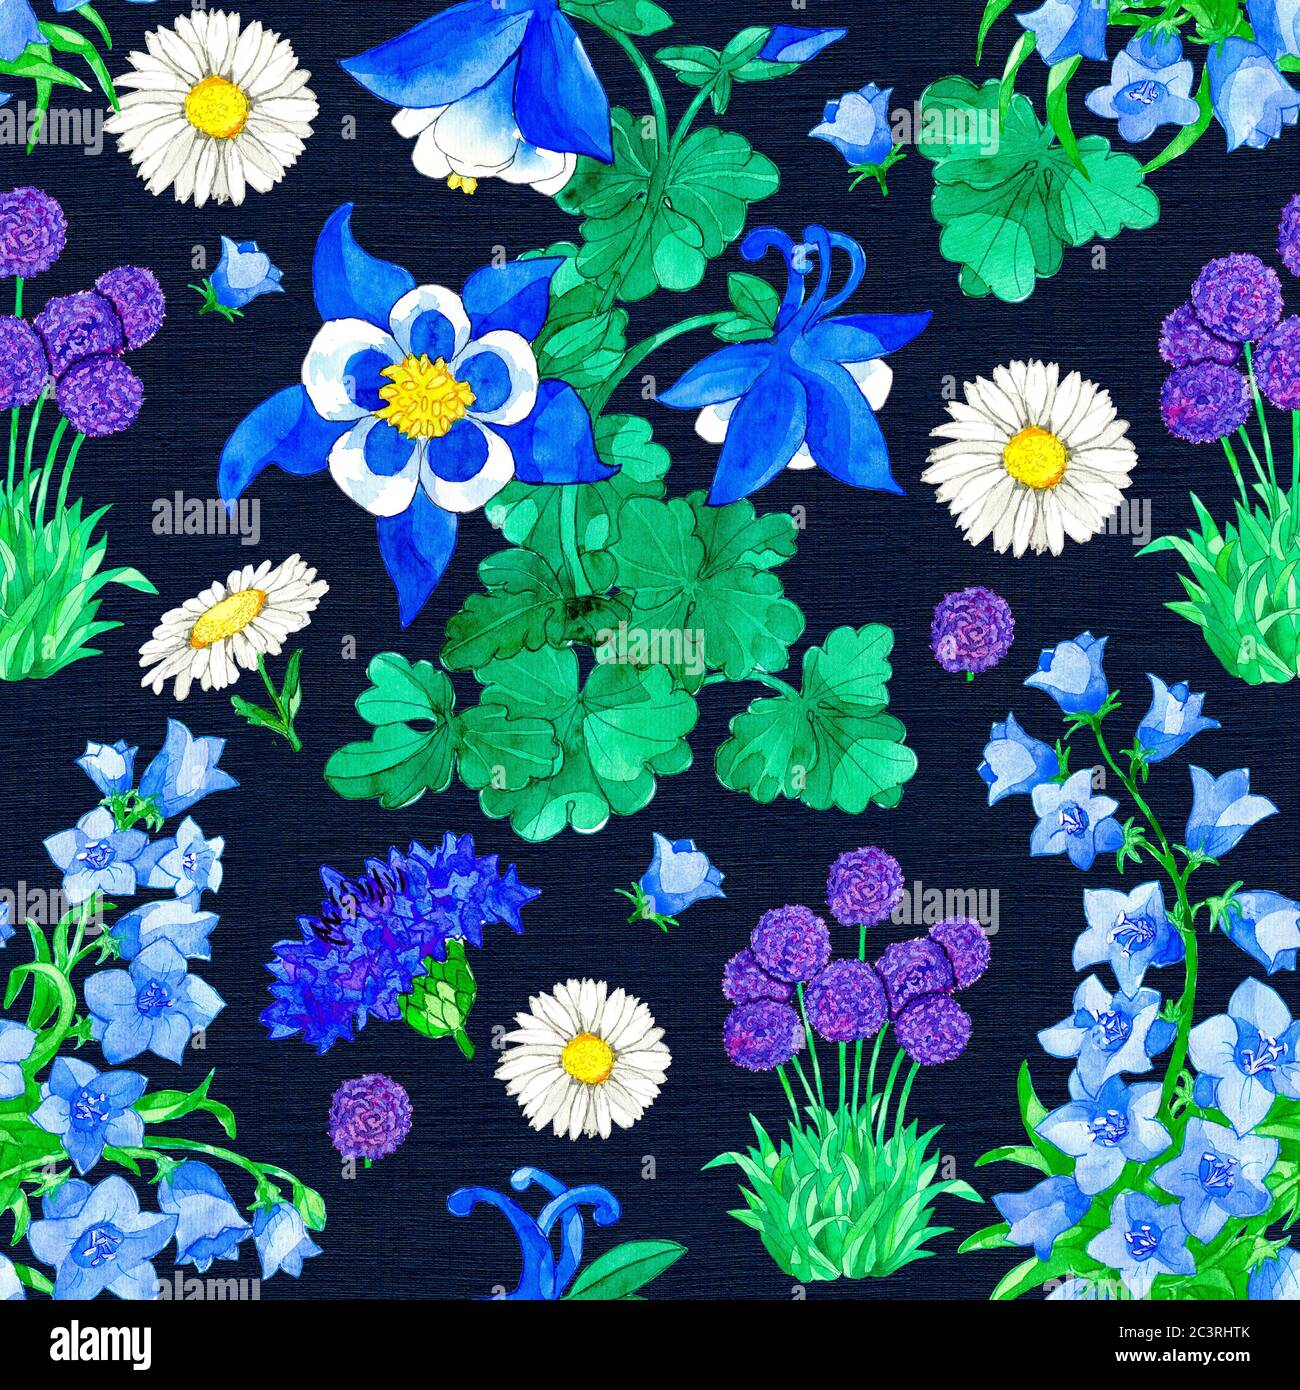 Seamless pattern with Aquilegia, Allium, Bellflower and Cornflower on blue background. Watercolor botanical illustration with floral elements for text Stock Photo